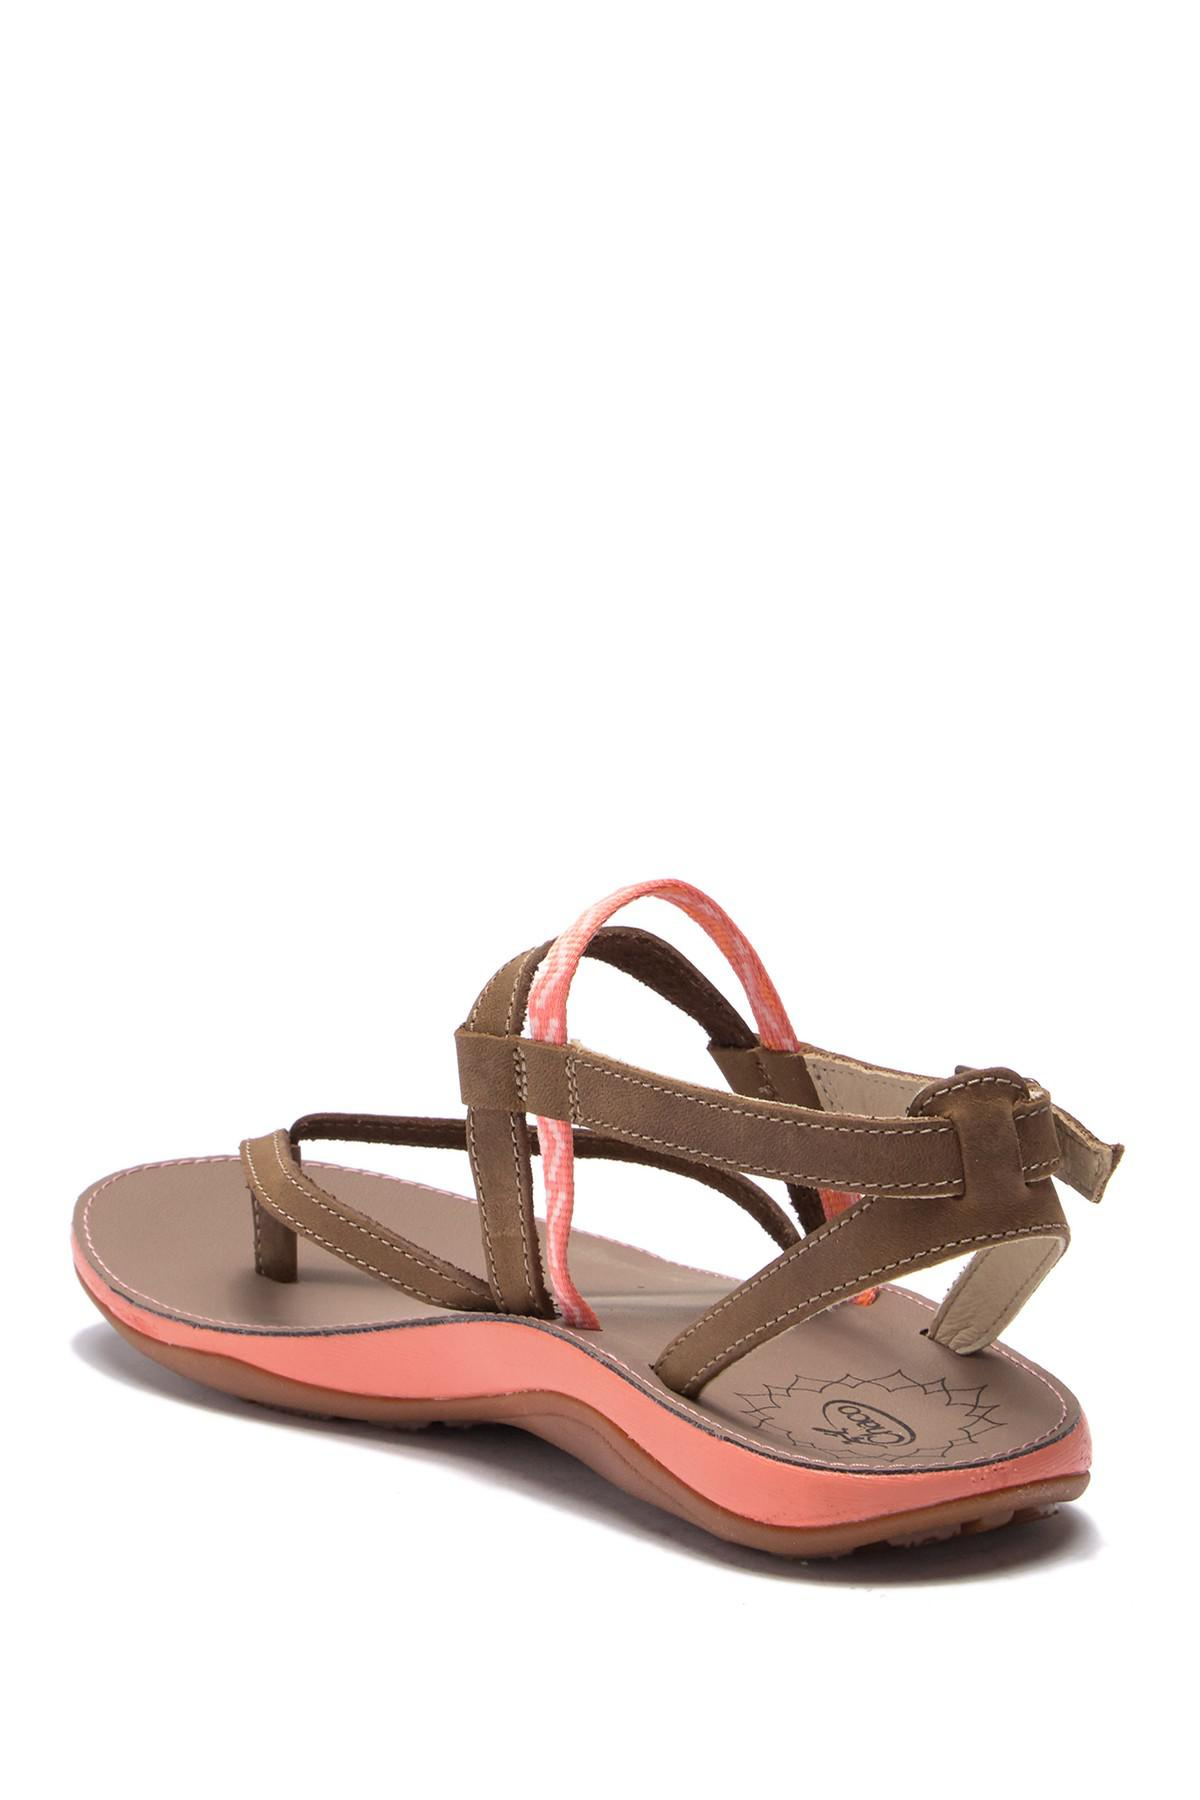 adeef77657036 Lyst - Chaco Loveland Leather Sandal in Brown